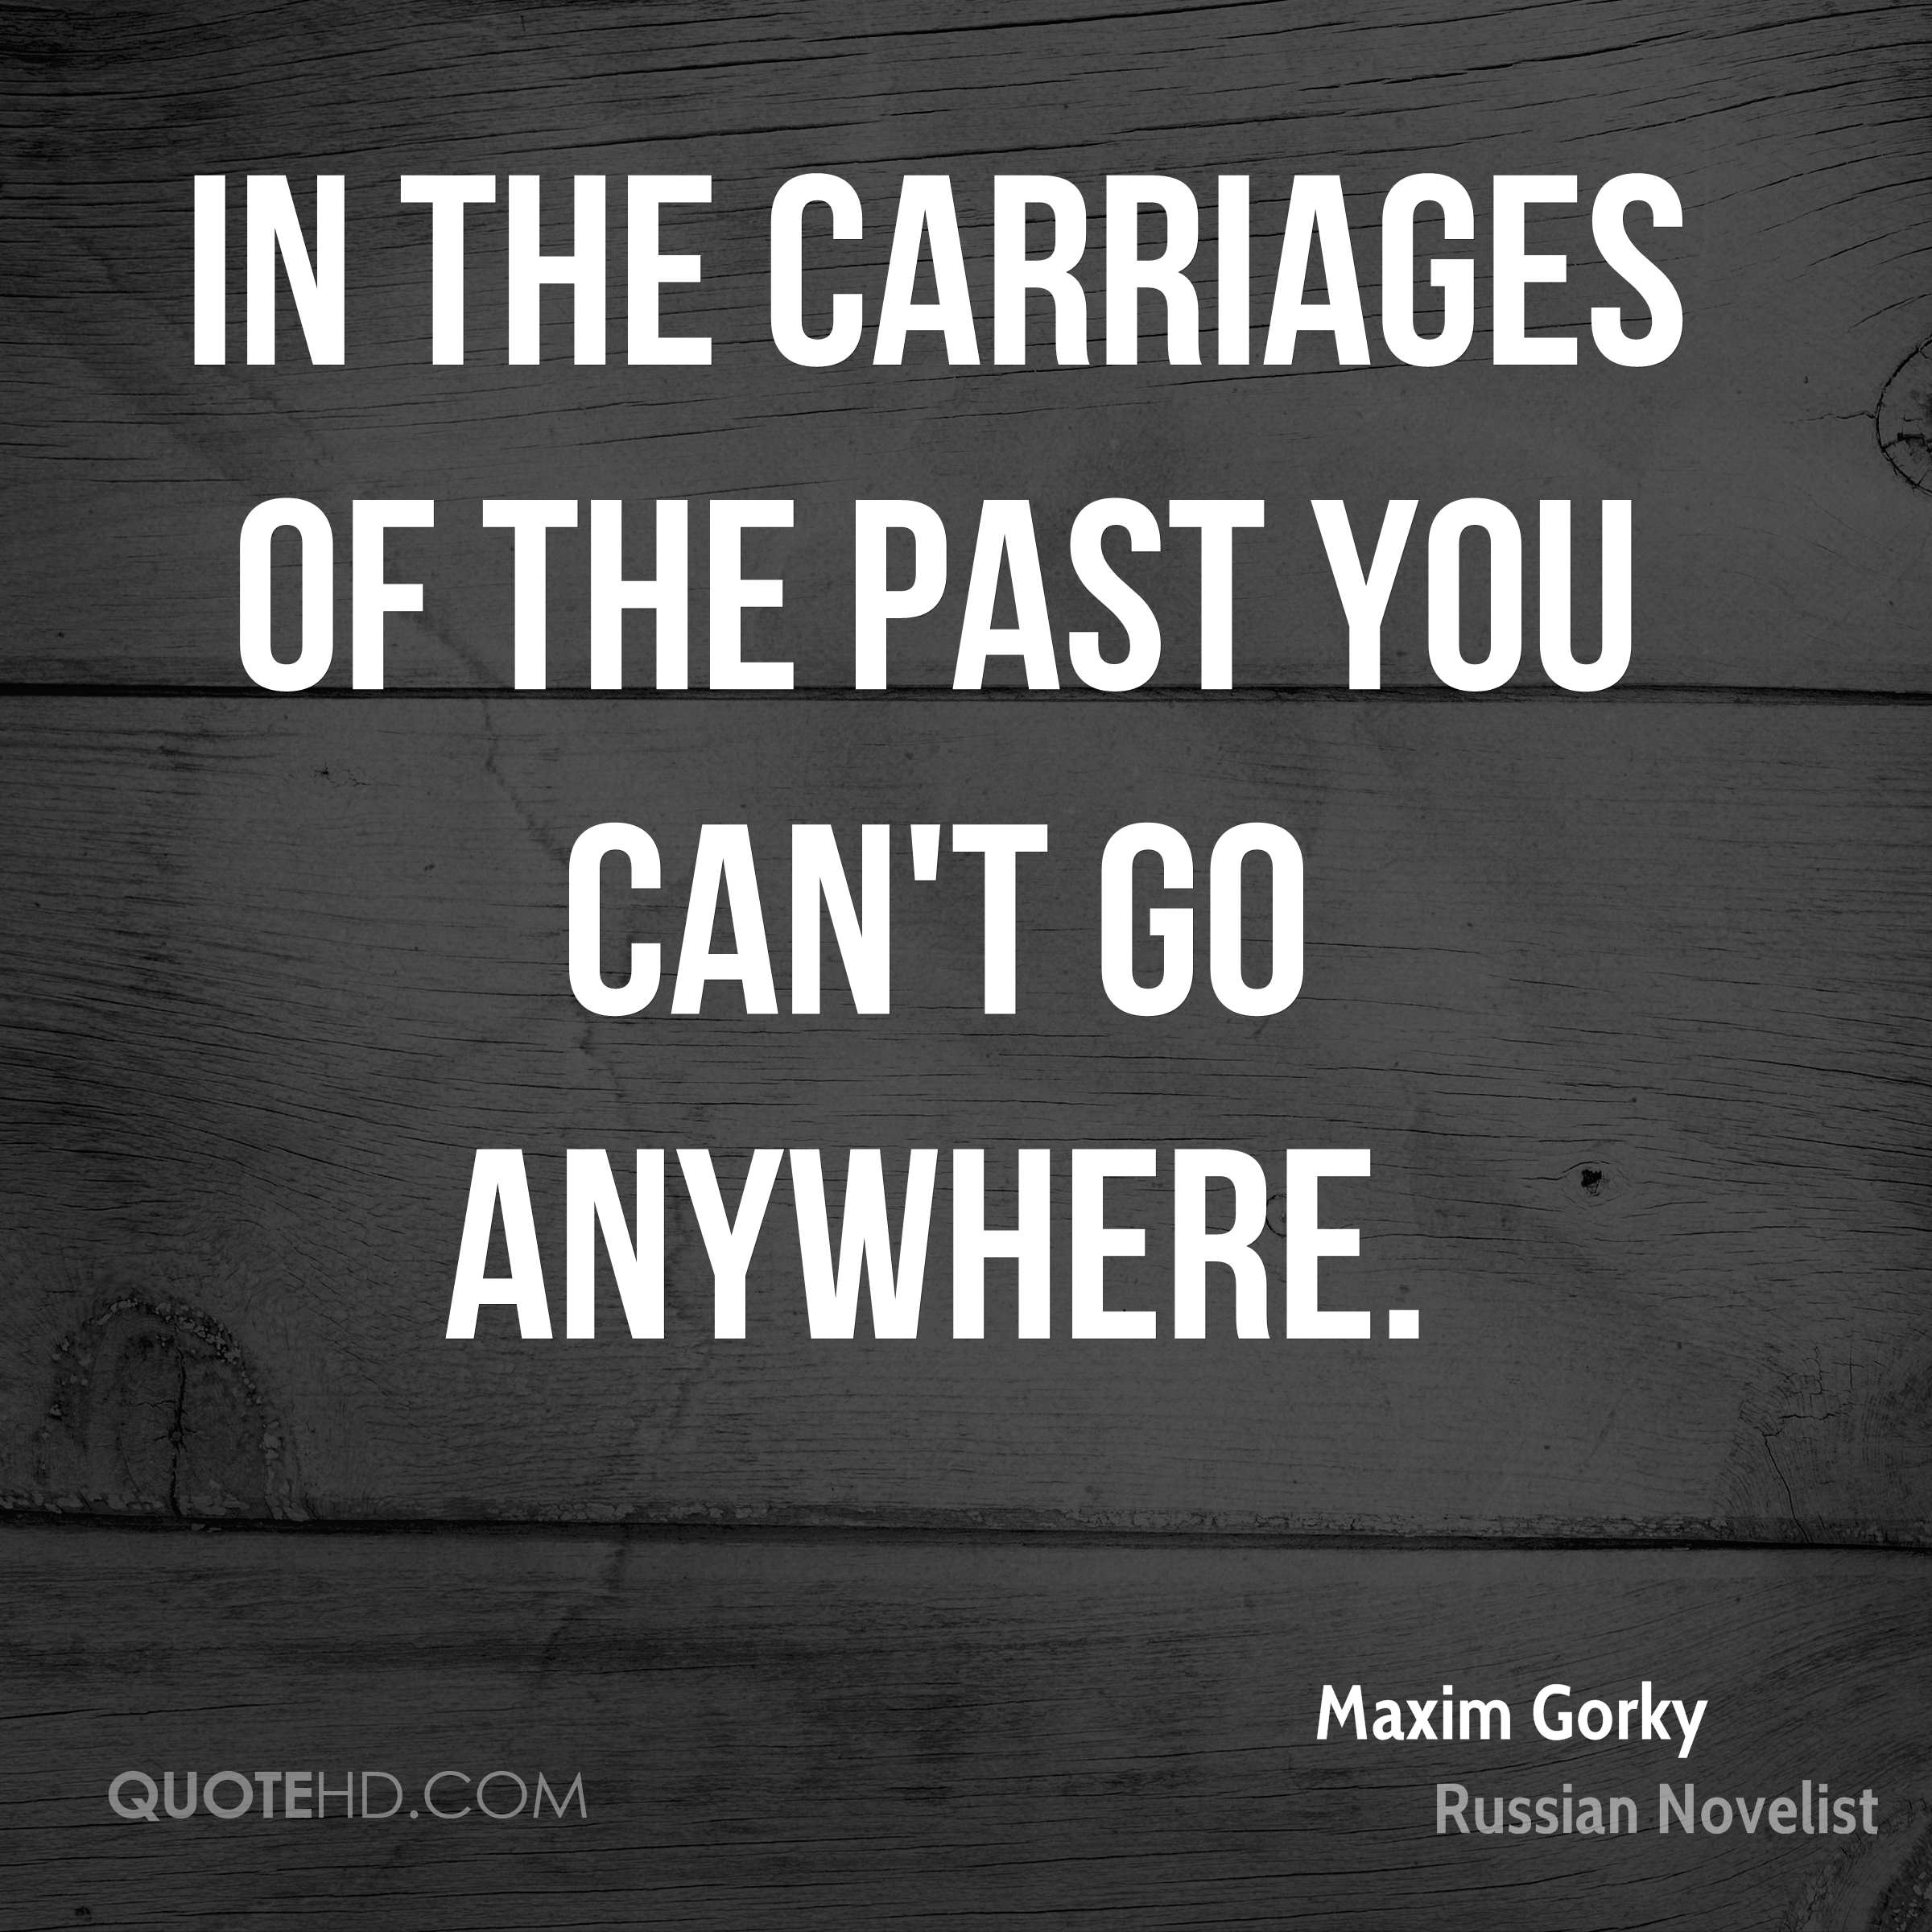 In the carriages of the past you can't go anywhere.